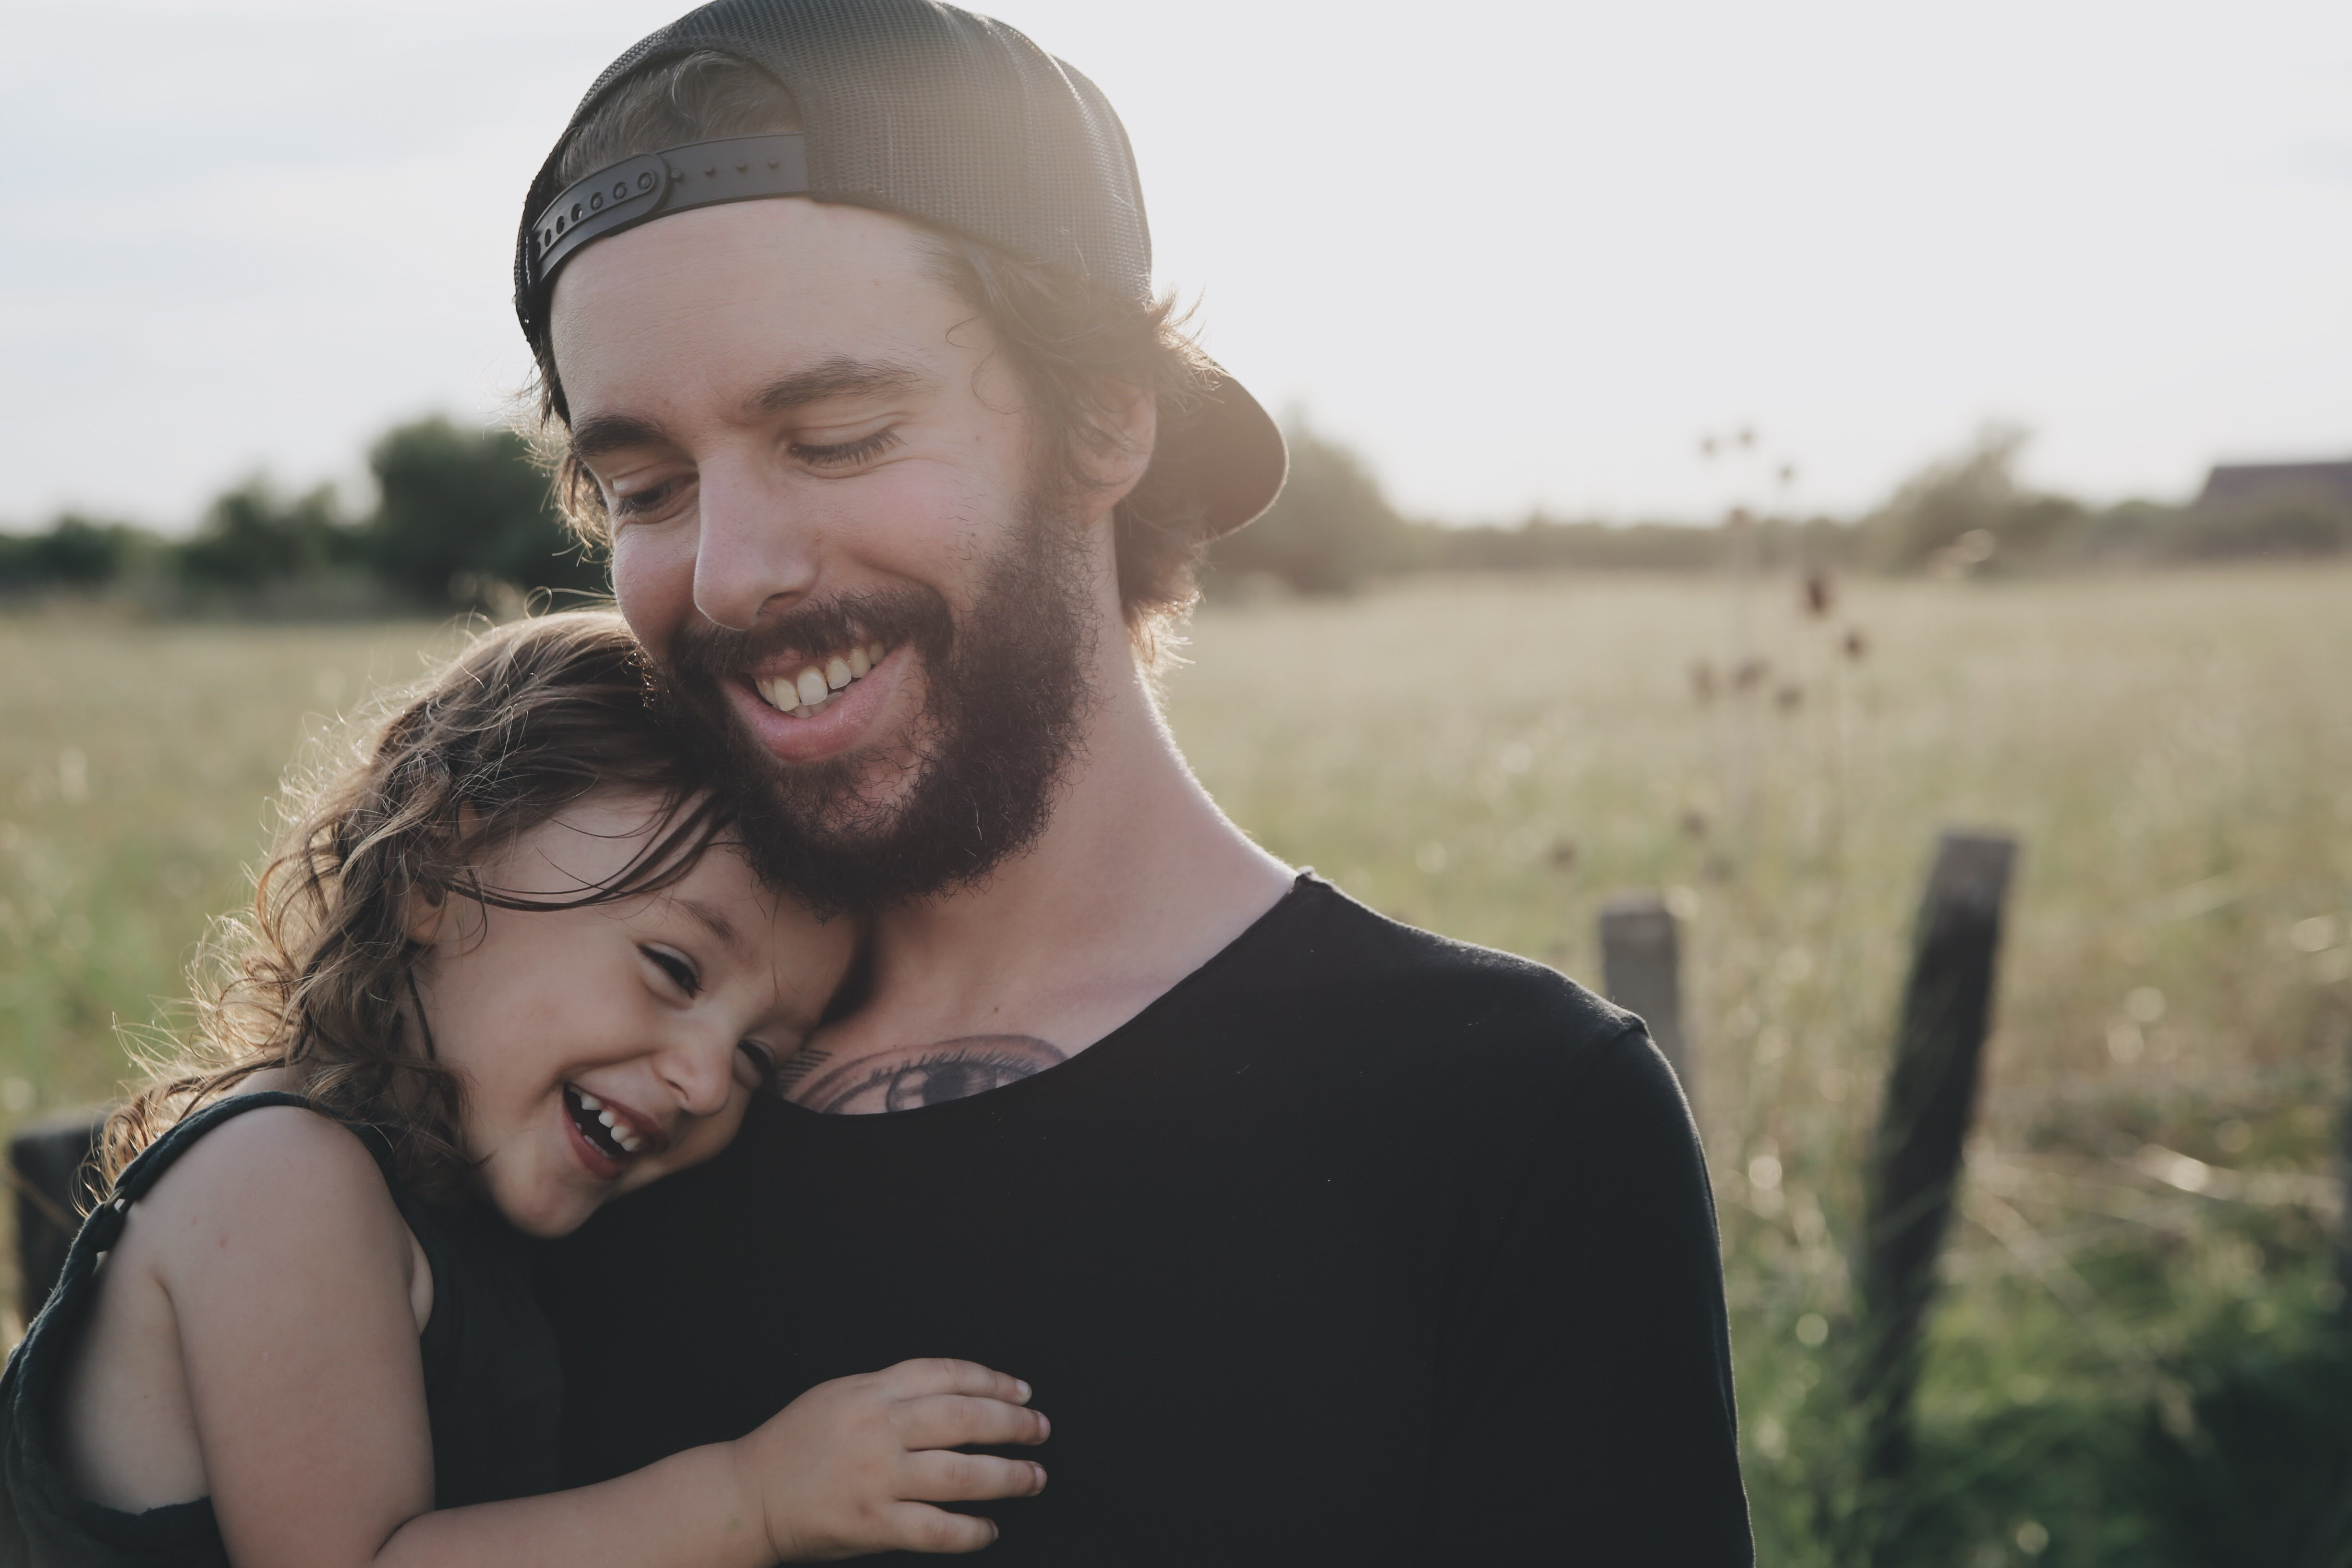 man carrying daughter in black sleeveless top